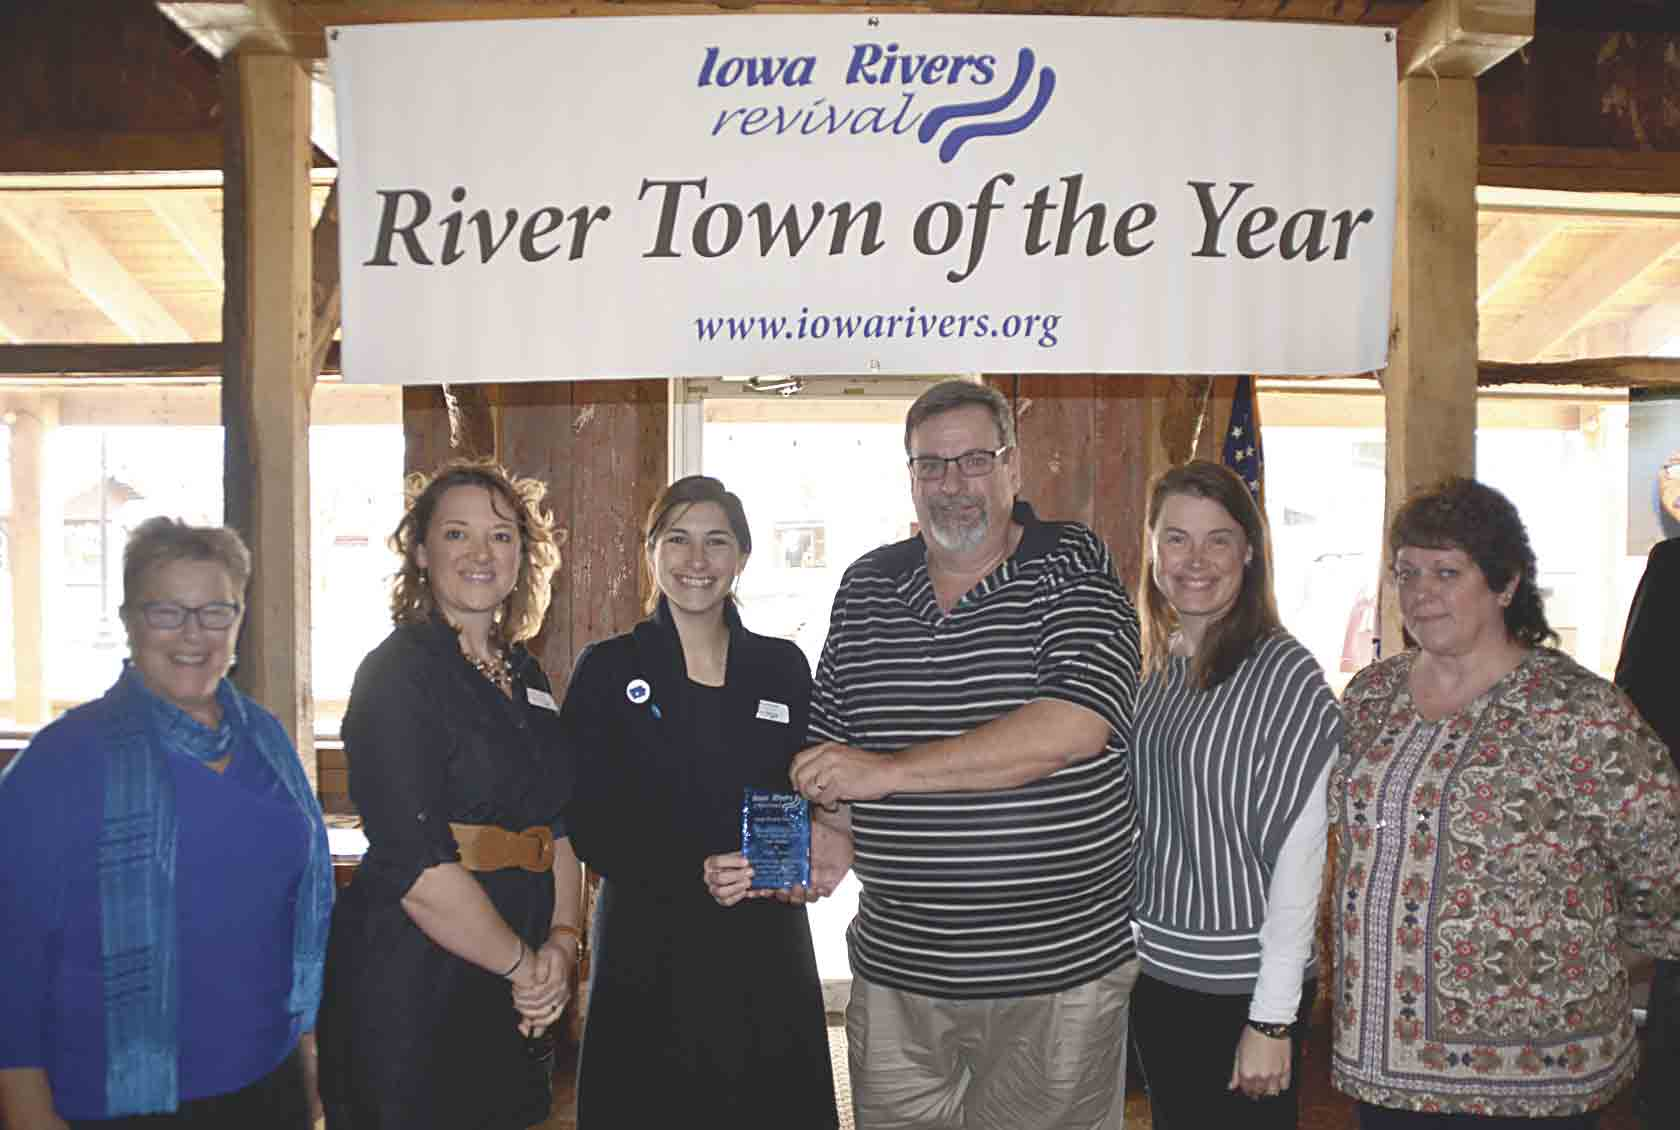 Elgin was officially awarded the Iowa River Revival (IRR) River Town of the Year award on Friday, March 16, at Dotzy's in Elgin. Members from IRR and the City of Elgin, including (l-r) Robin Fortney, IRR Board of Directors secretary; Jenn Dreier, IRR assistant director; Molly Hanson,...